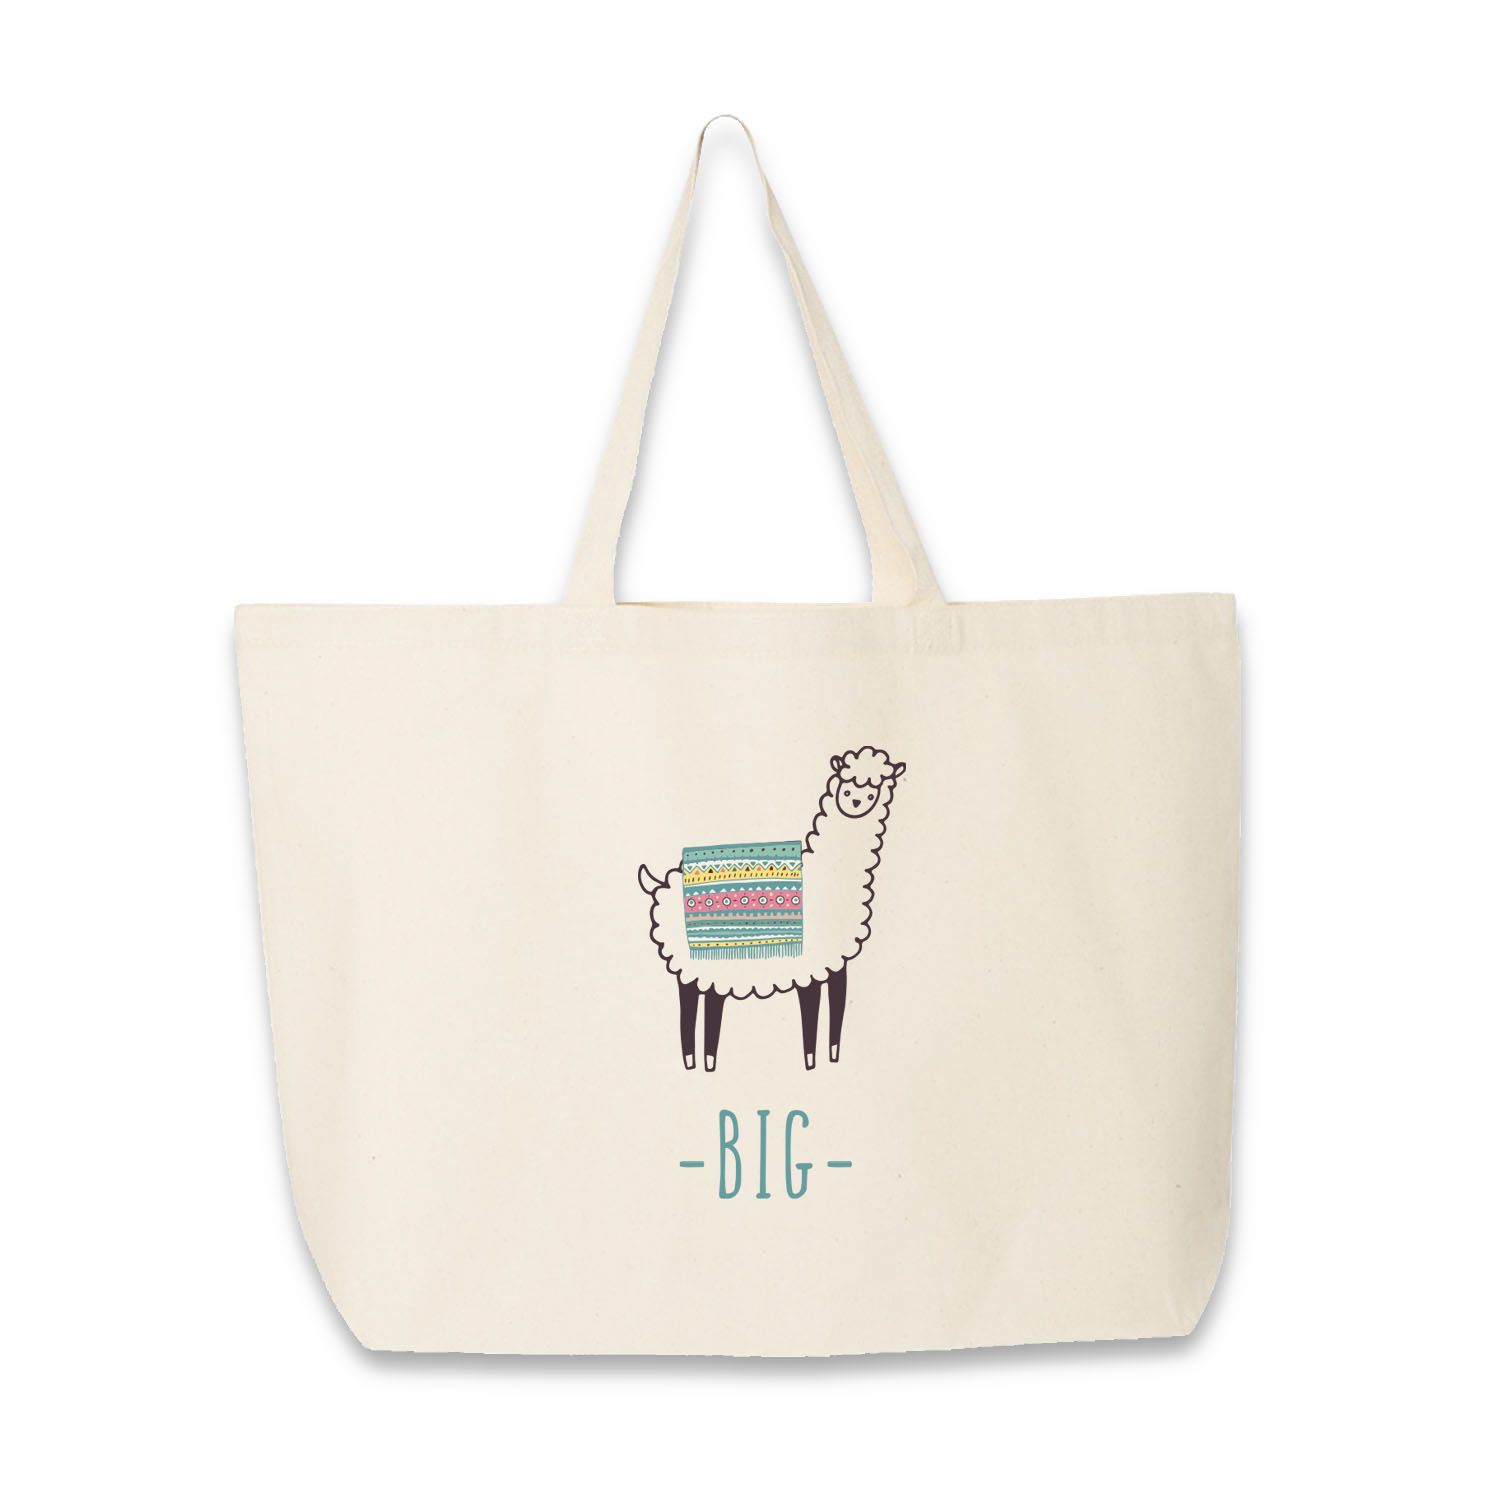 Sorority Canvas Tote Bag Or Drawstring